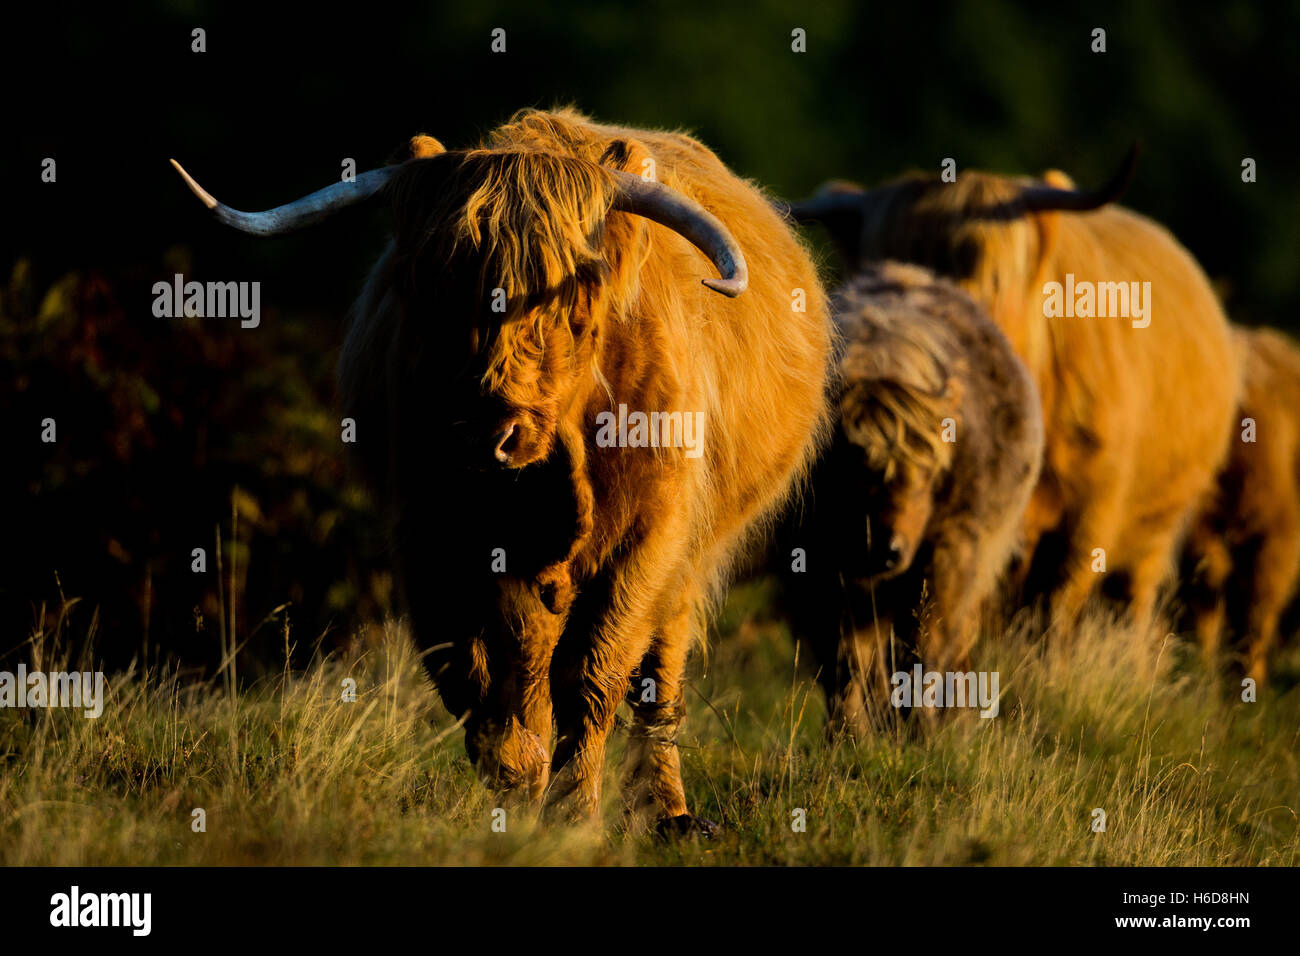 Highland cows in morning sunlight. - Stock Image